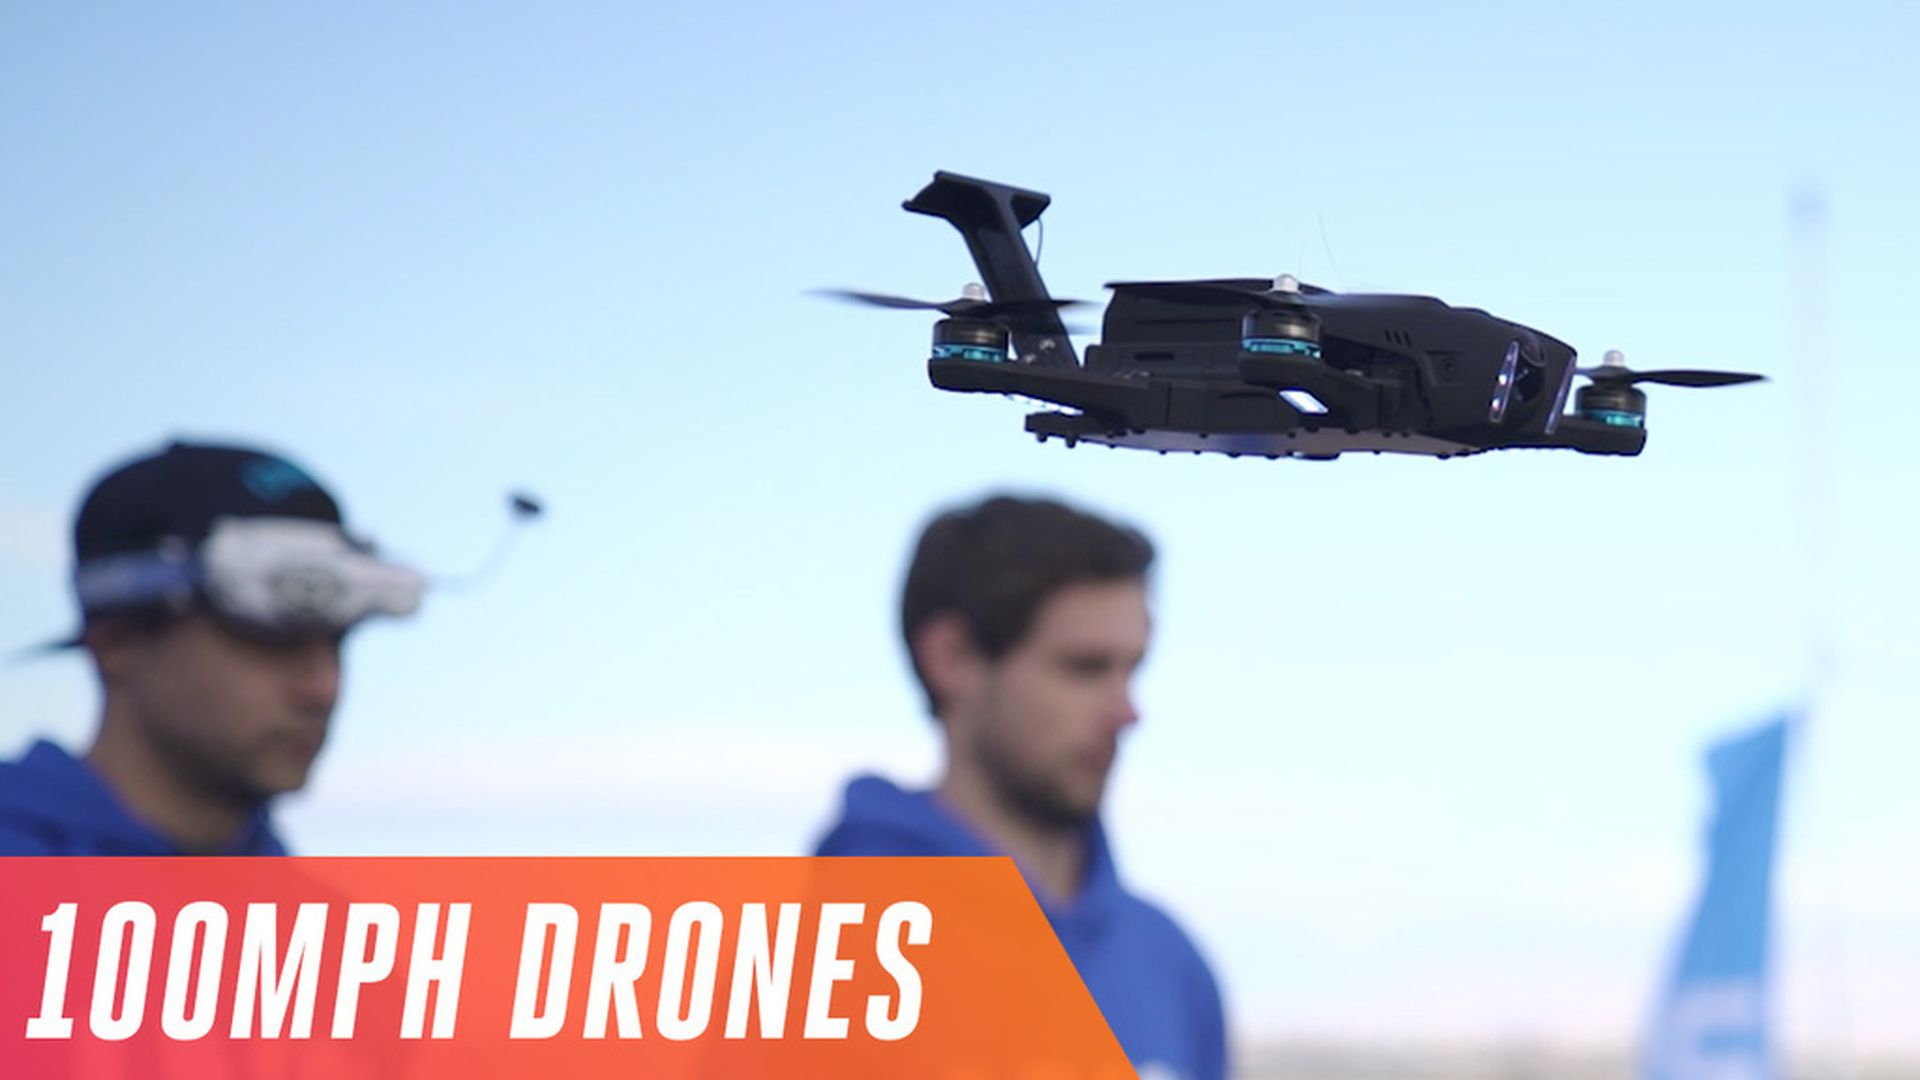 You can buy this 100 mph drone — try not to hurt anyone - The Verge